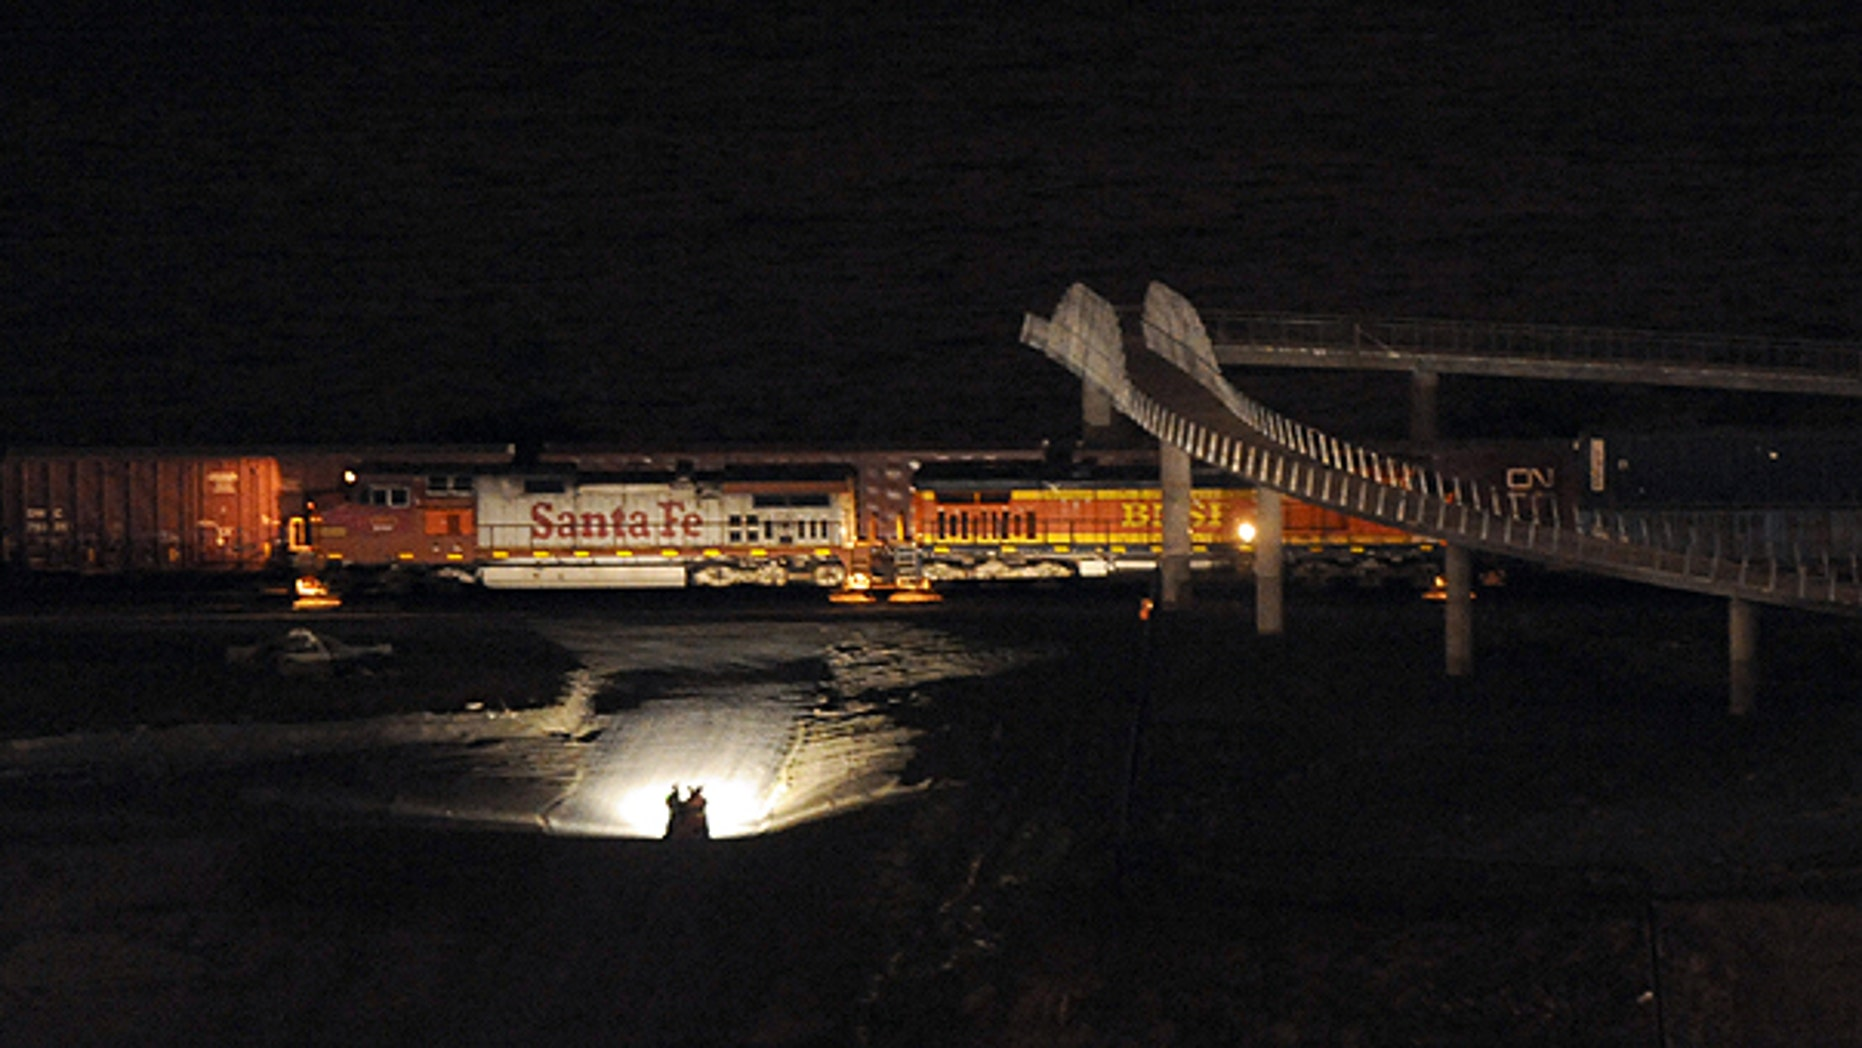 Feb. 26: ights from a truck illuminate train cars near Chambers Bay in University Place, Wash., after two trains collided.